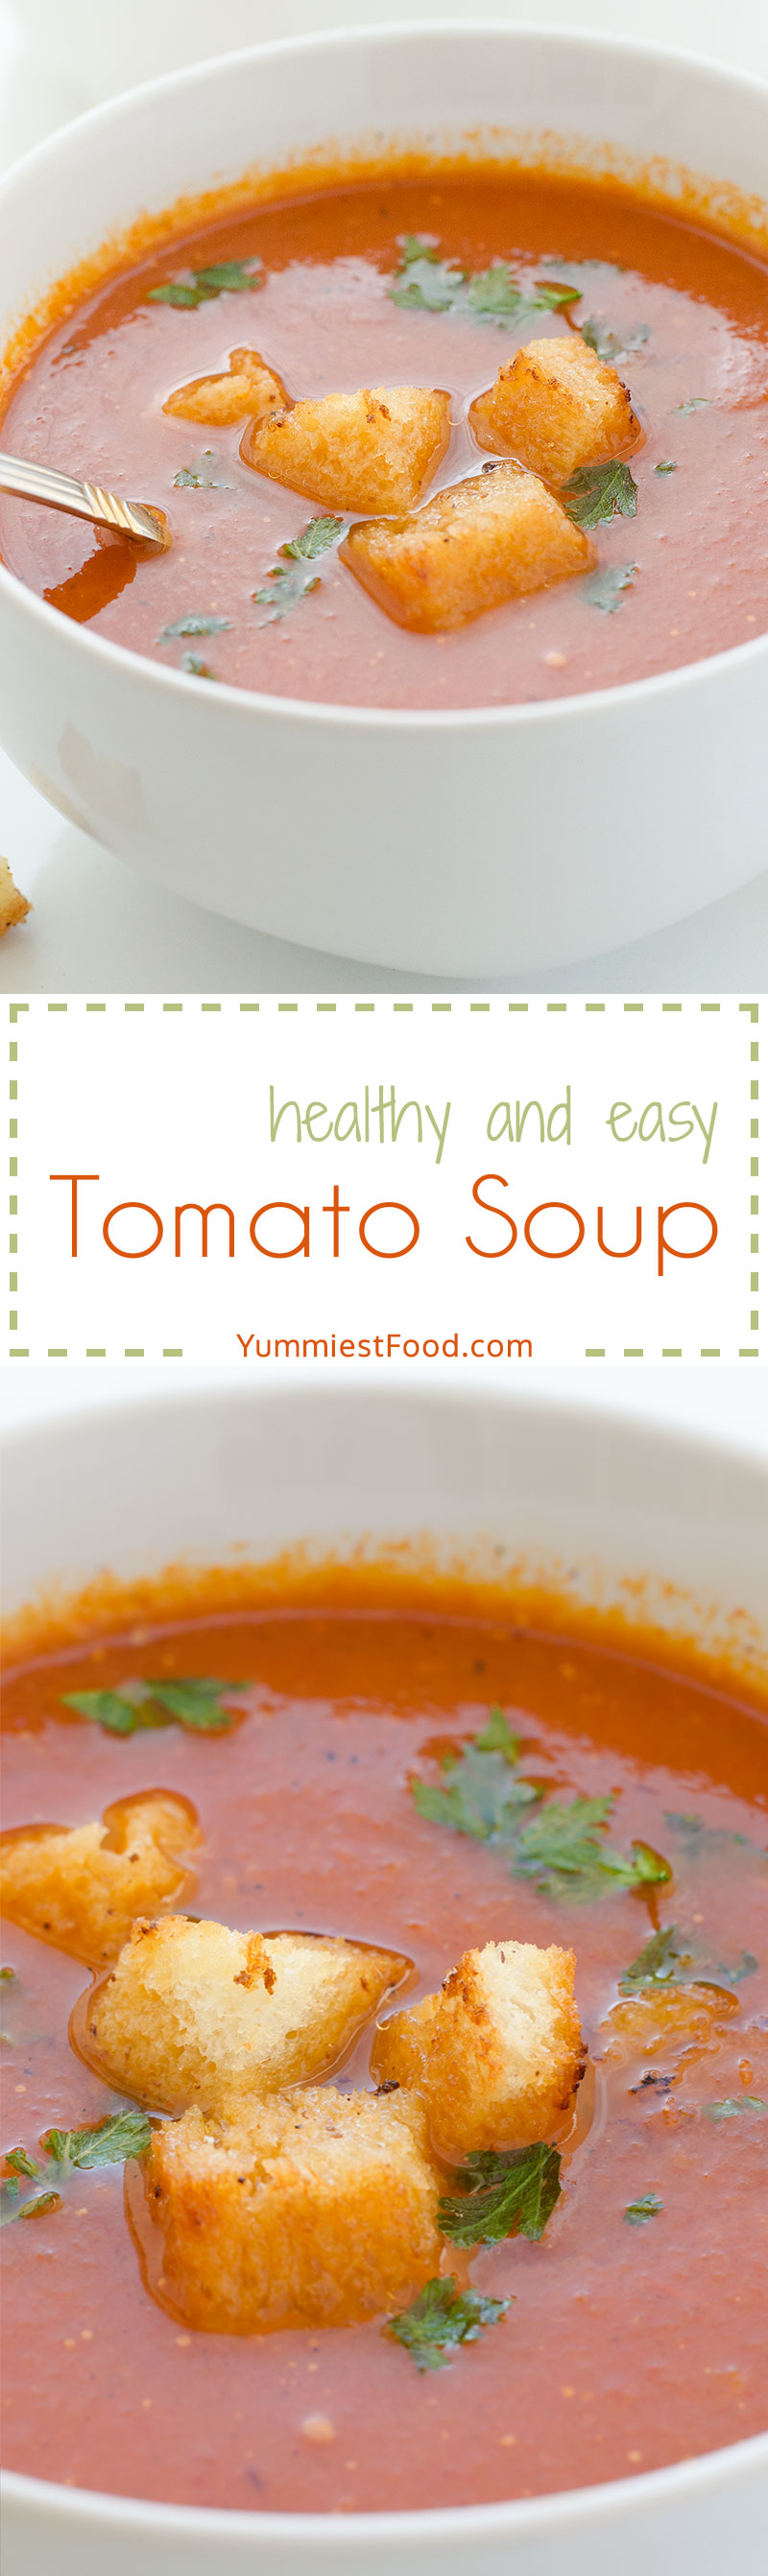 Tomato Soup - Try to make this tomato soup on my way, your family will stay speechless and you will cook it again and again